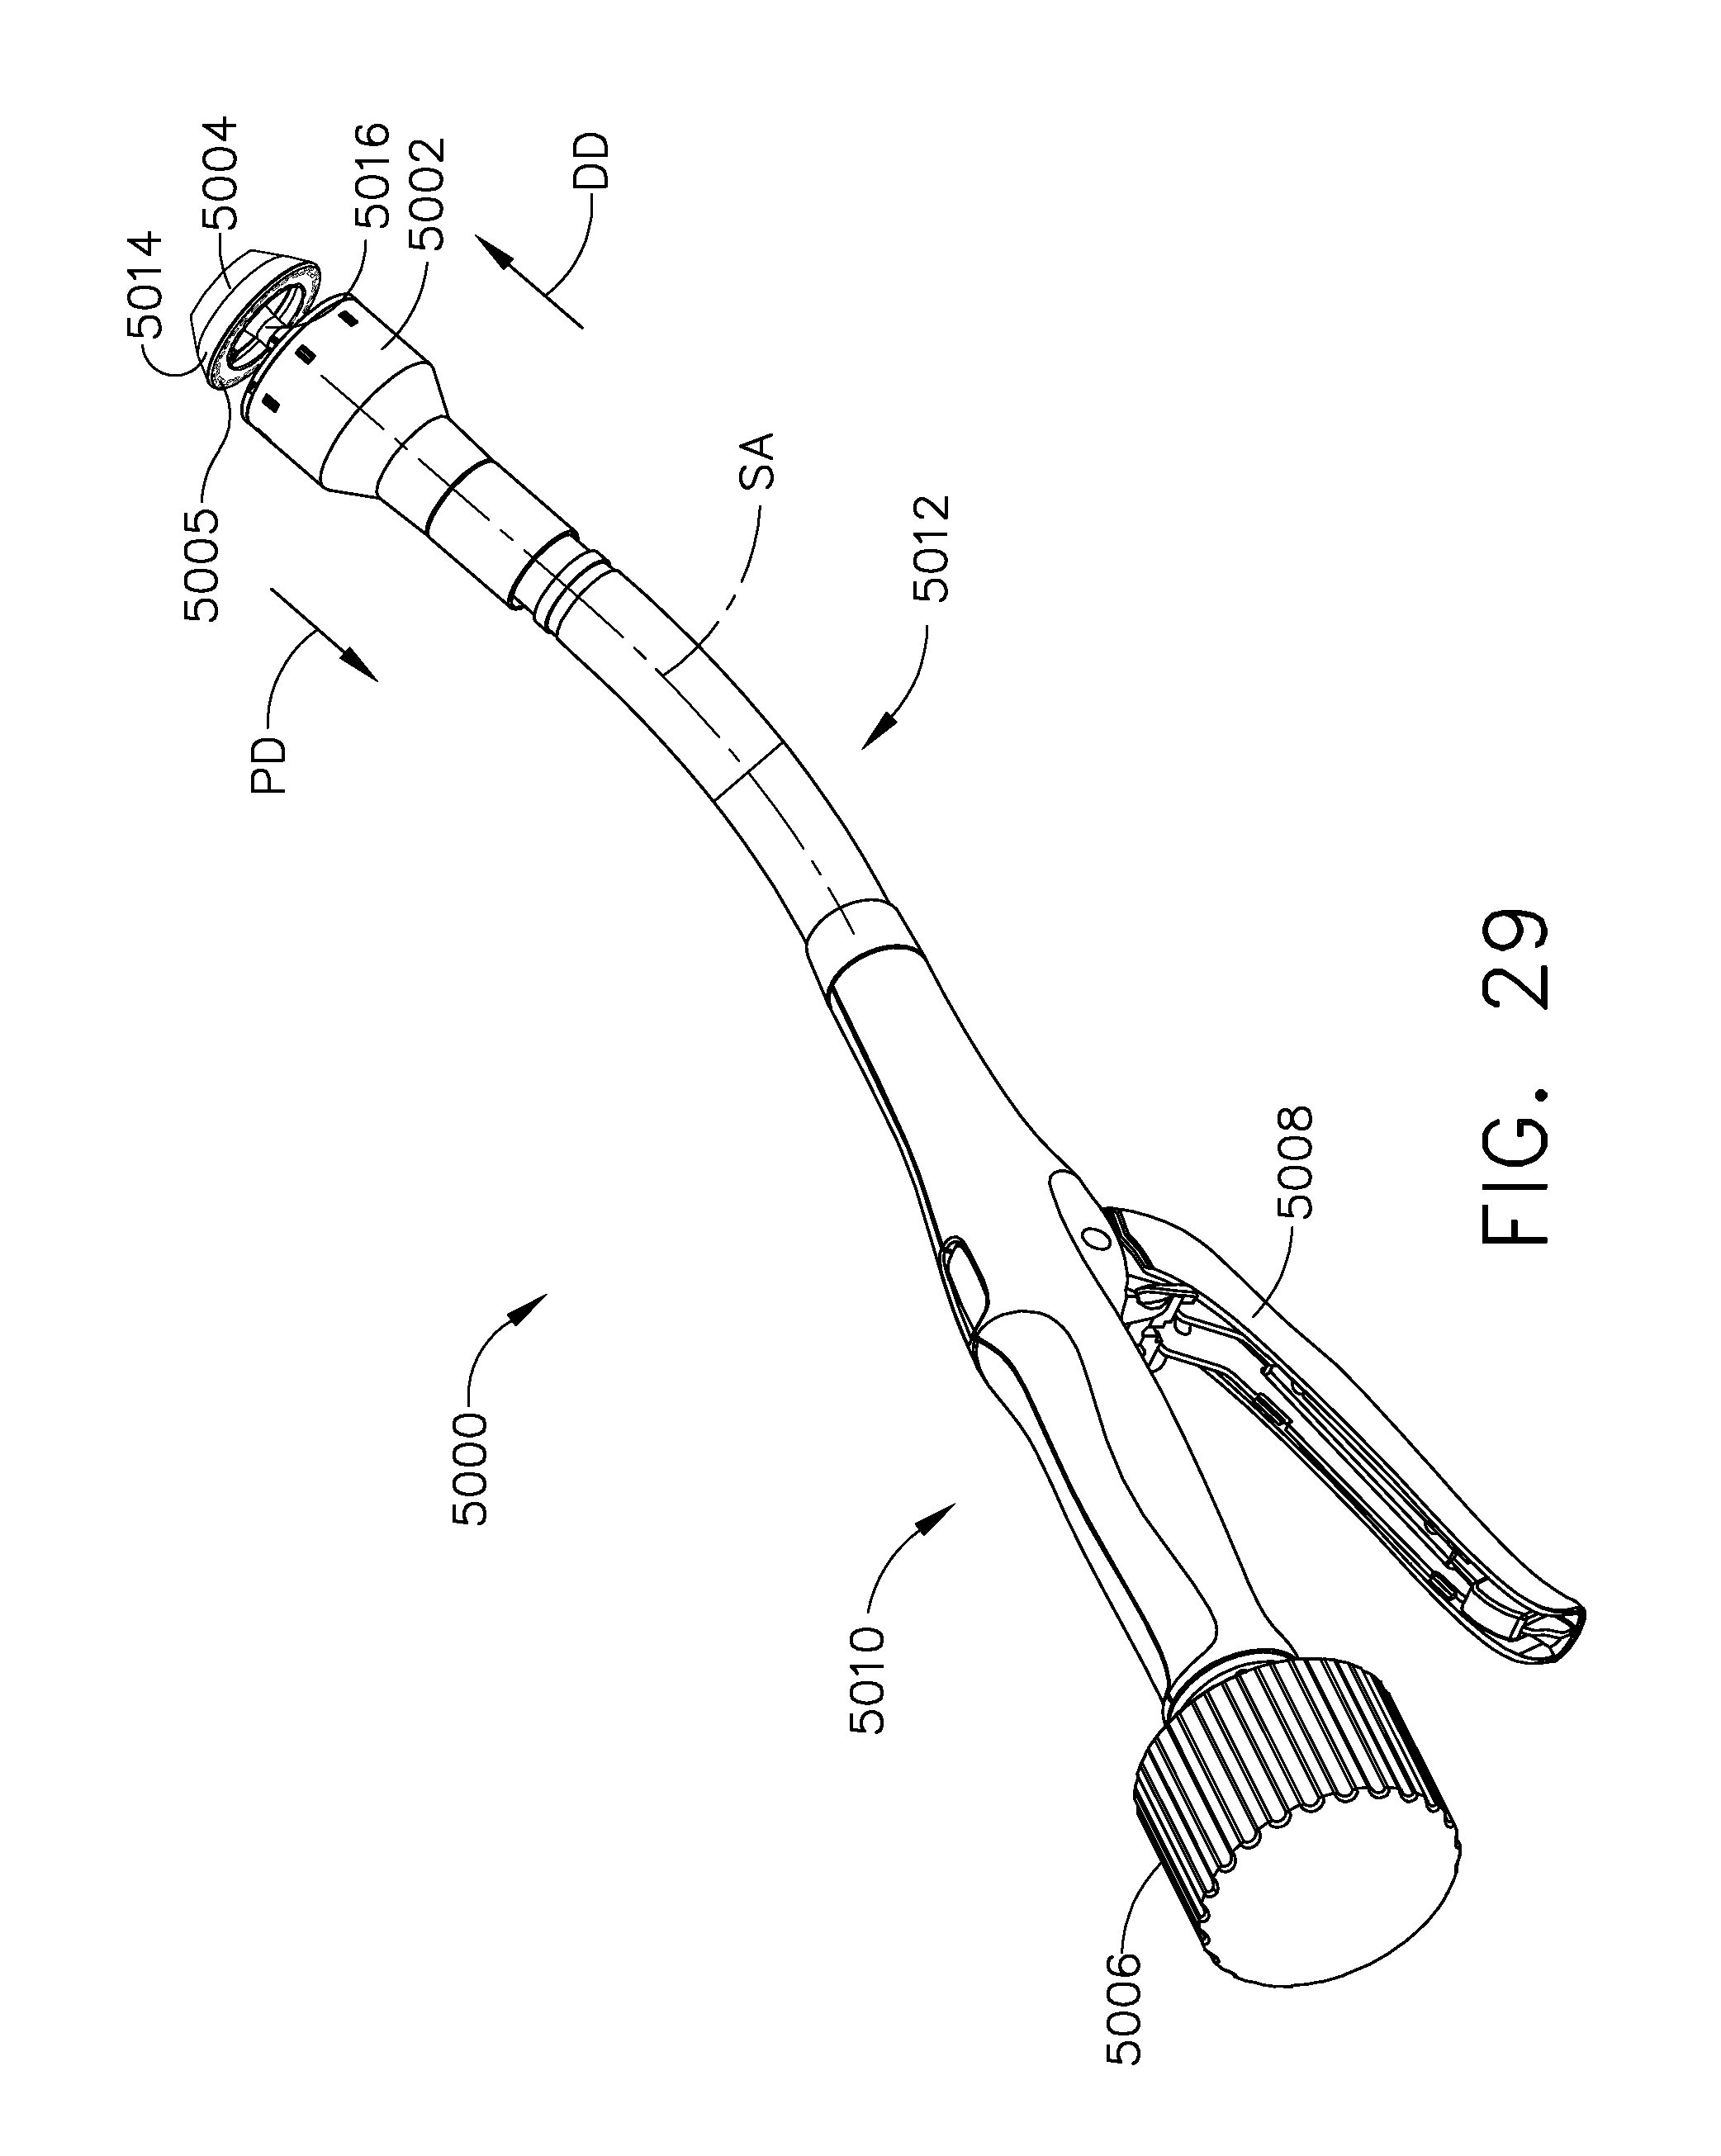 us20160089142a1 method for creating a flexible staple line 66 Block Layout us20160089142a1 method for creating a flexible staple line patents